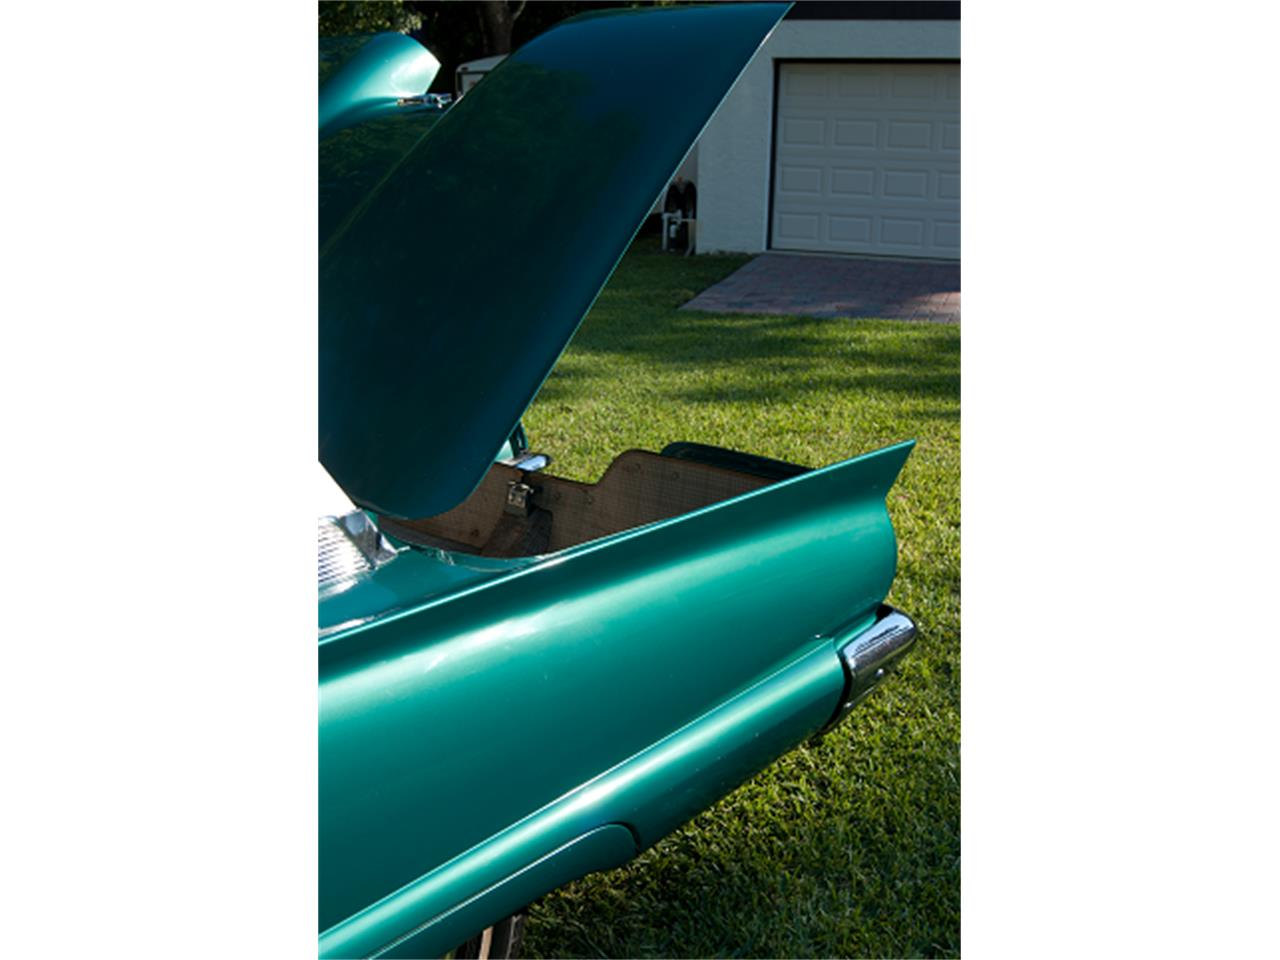 Large Picture of Classic '59 Ford Thunderbird located in Florida - $15,500.00 - LLRY